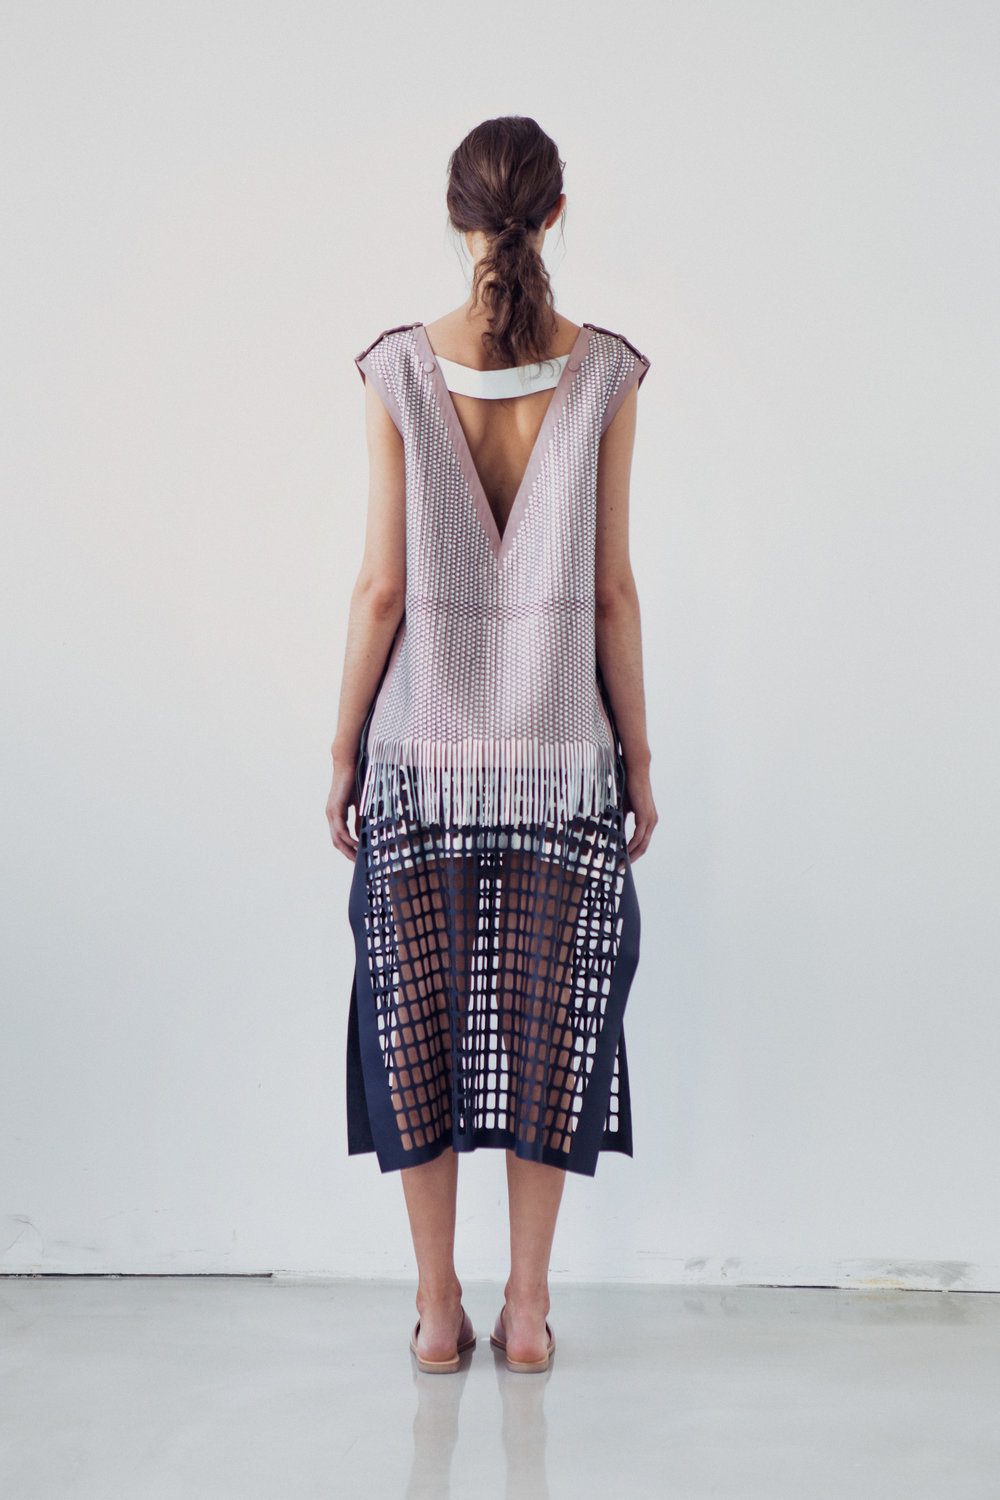 allie_howard_lookbook_01_back.jpg